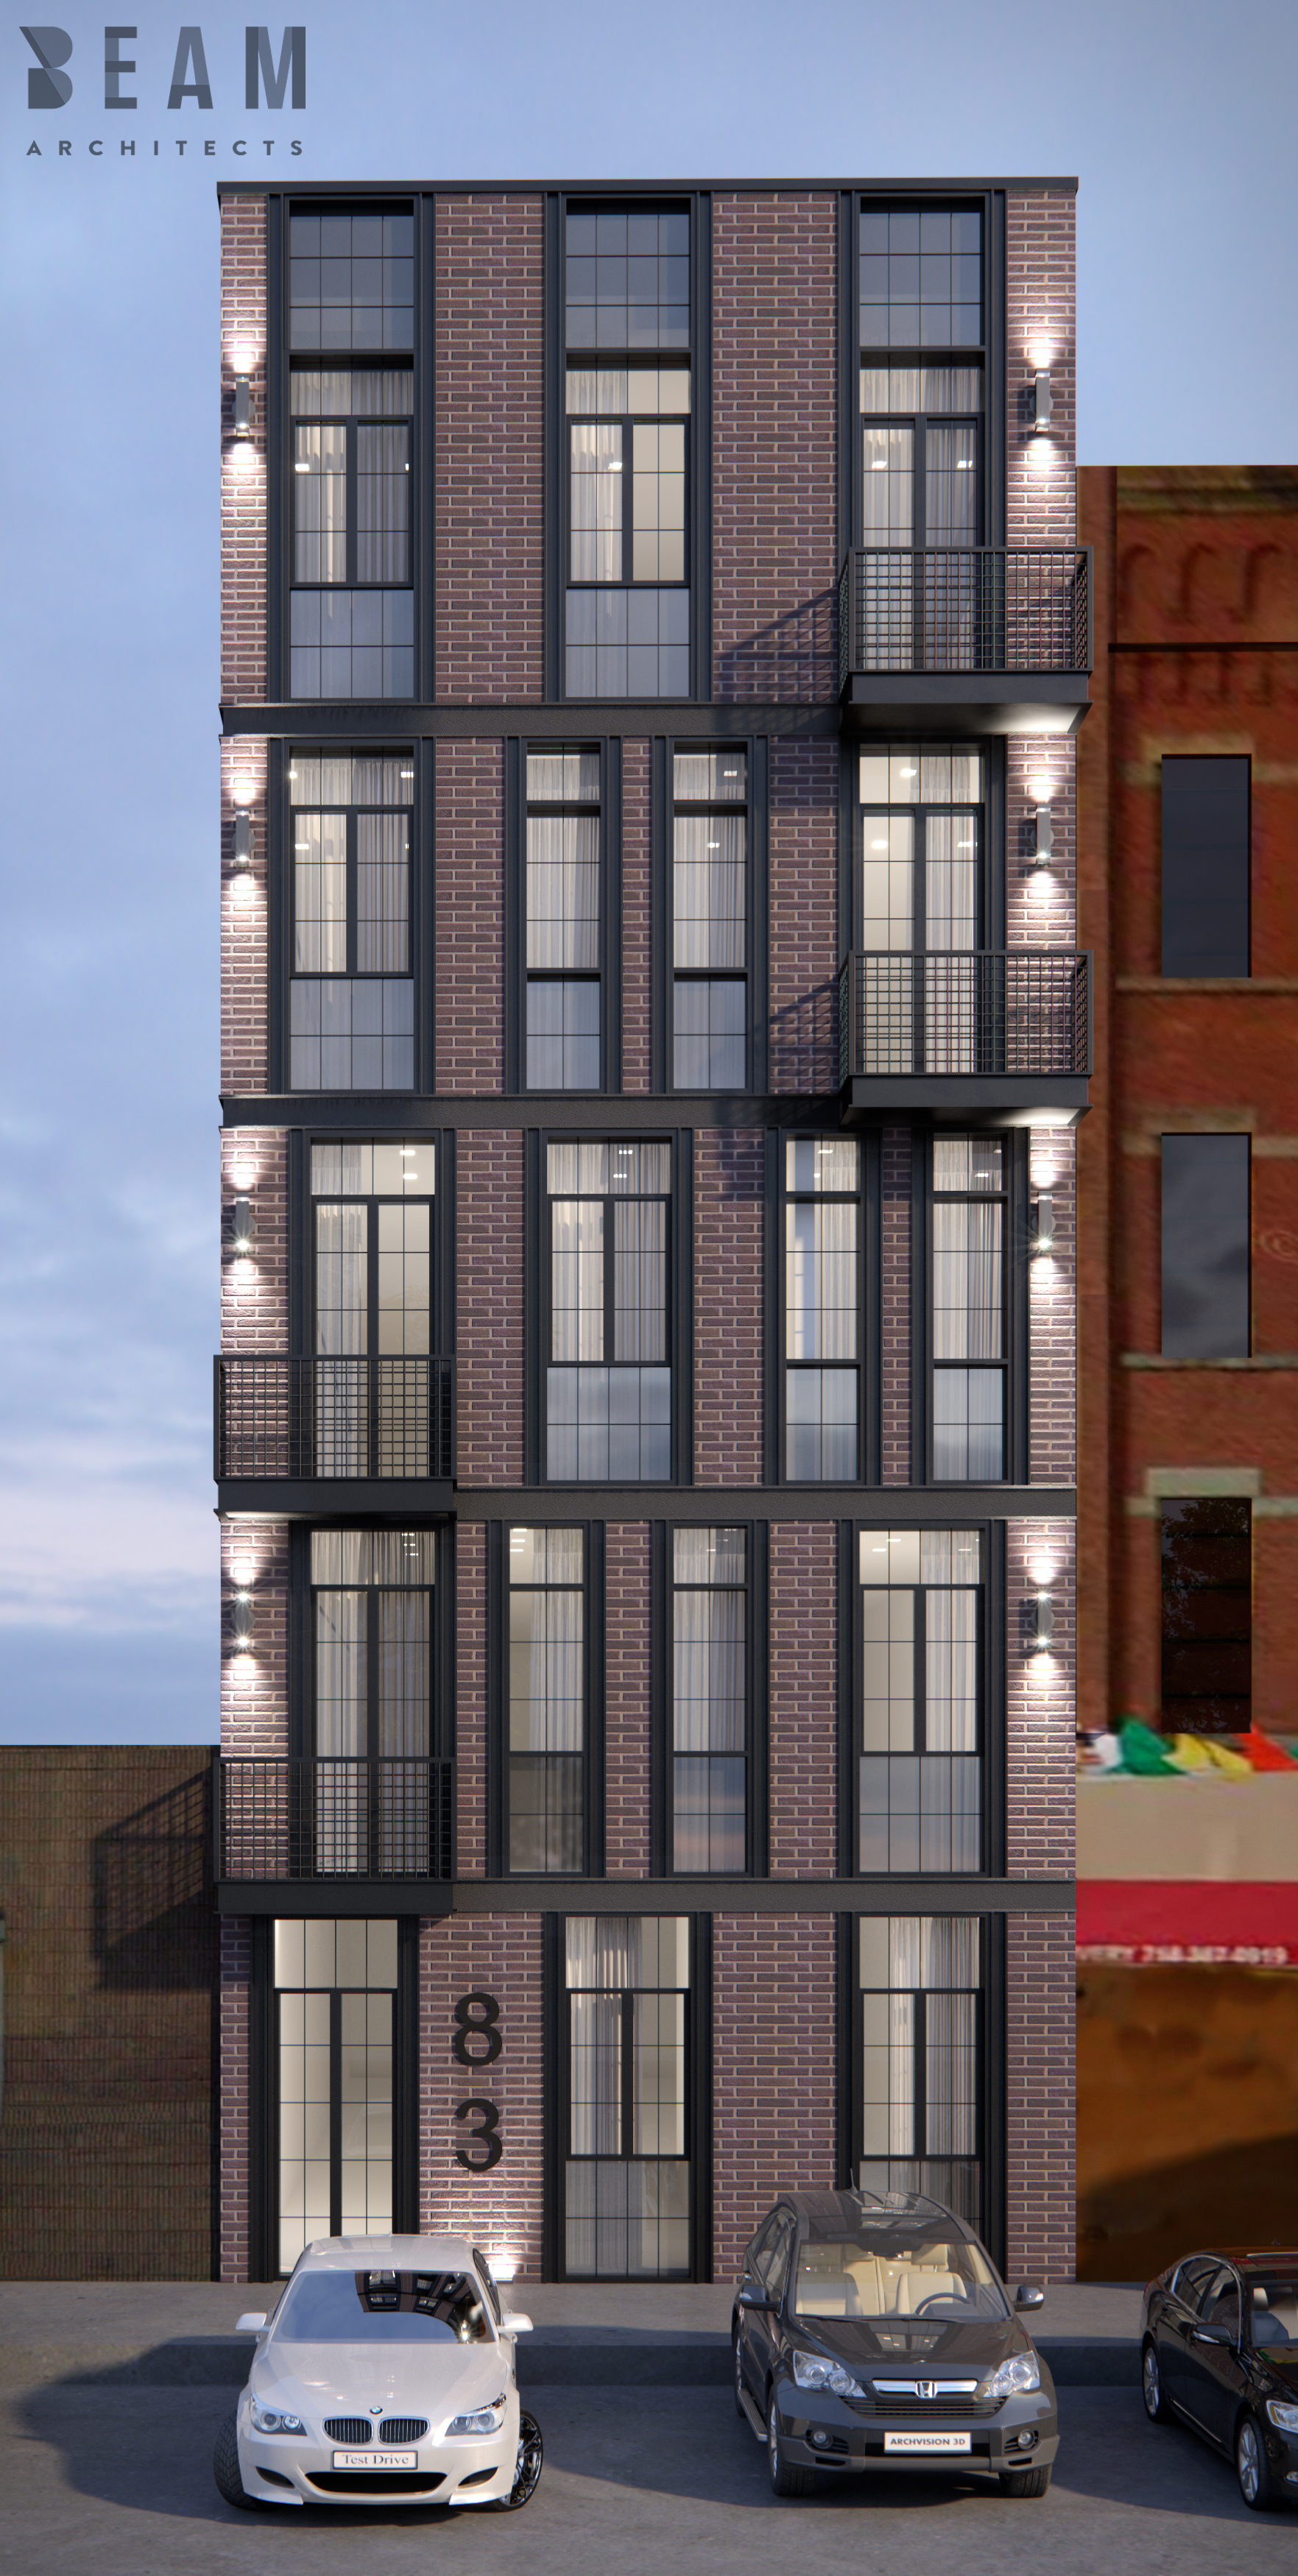 83 Humboldt Street, rendering via J Goldman Design